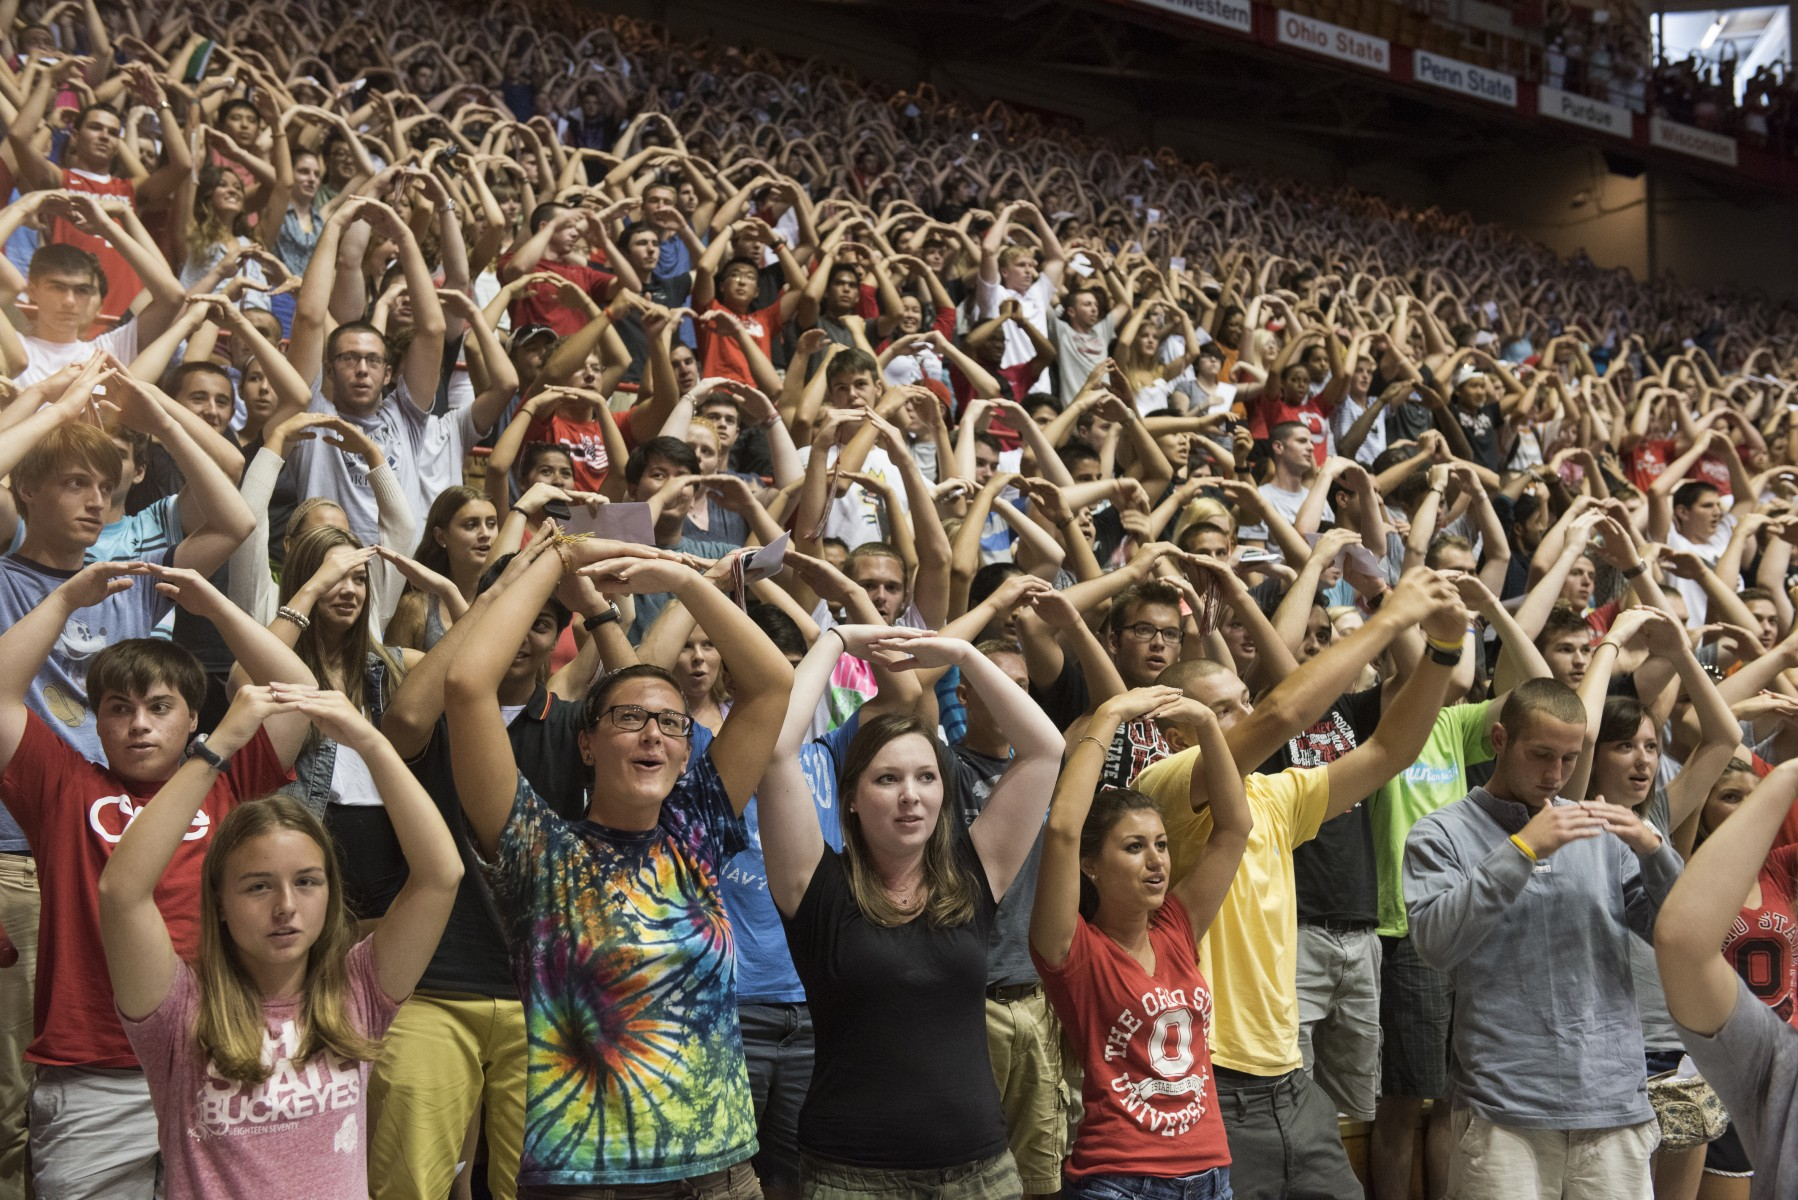 First-year students are led in an O-H-I-O chant at Convocation.